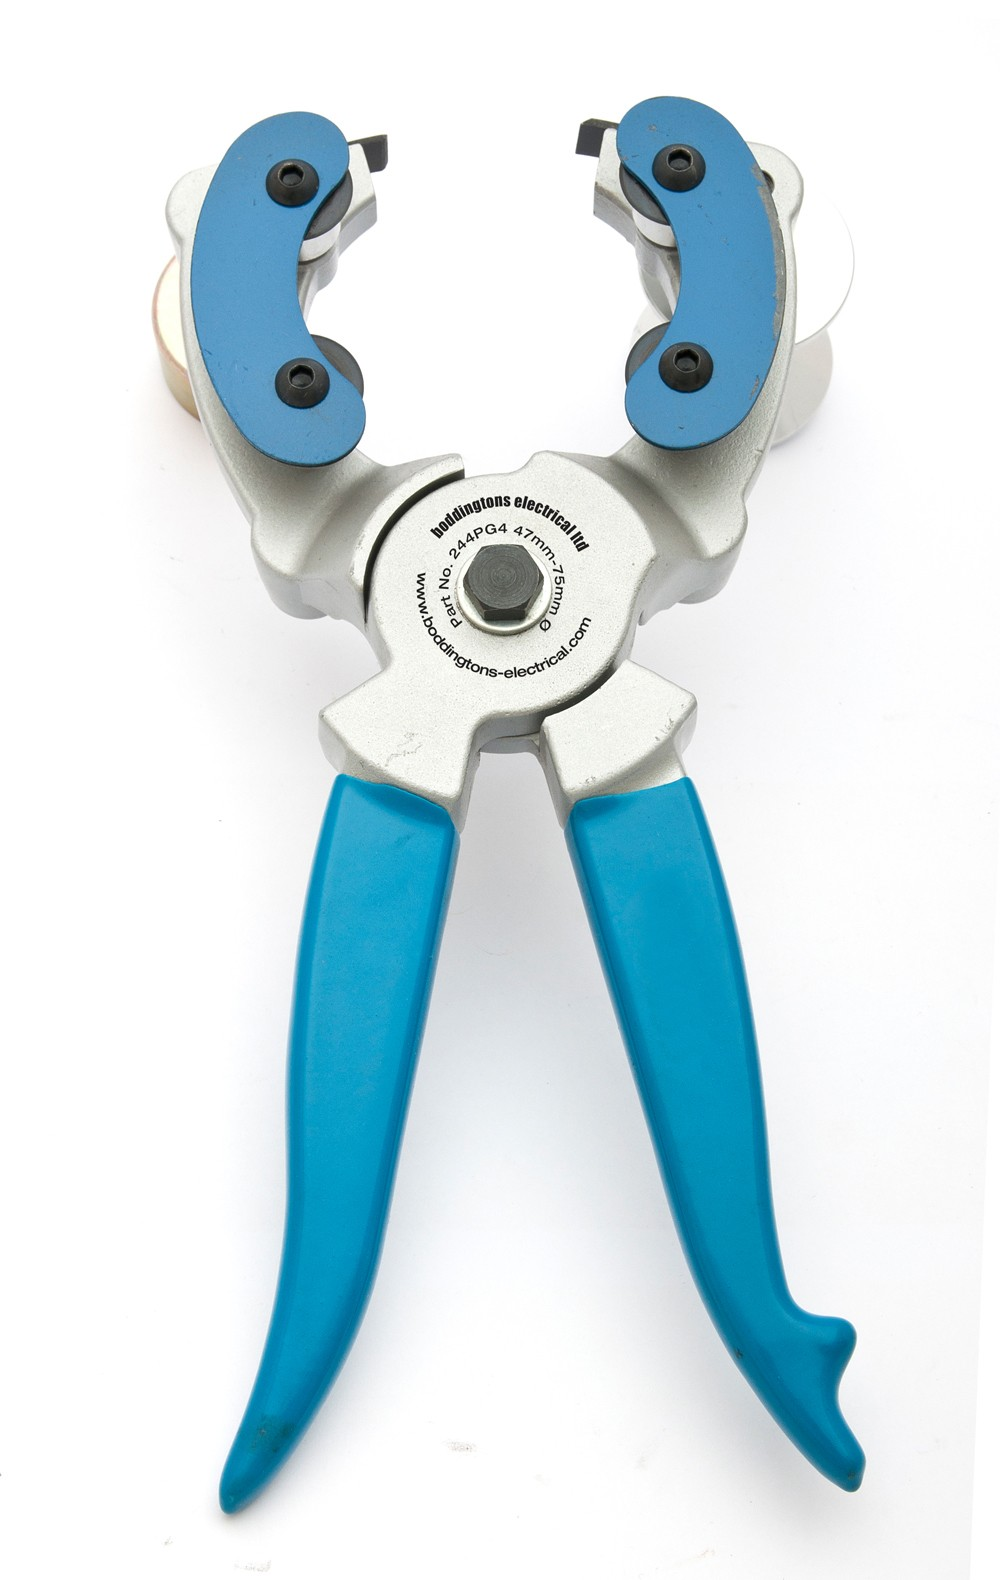 https://www.powerandcables.com/product/product-category/lv-11kv-33kv-cable-stripping-pliers-26-52mm/